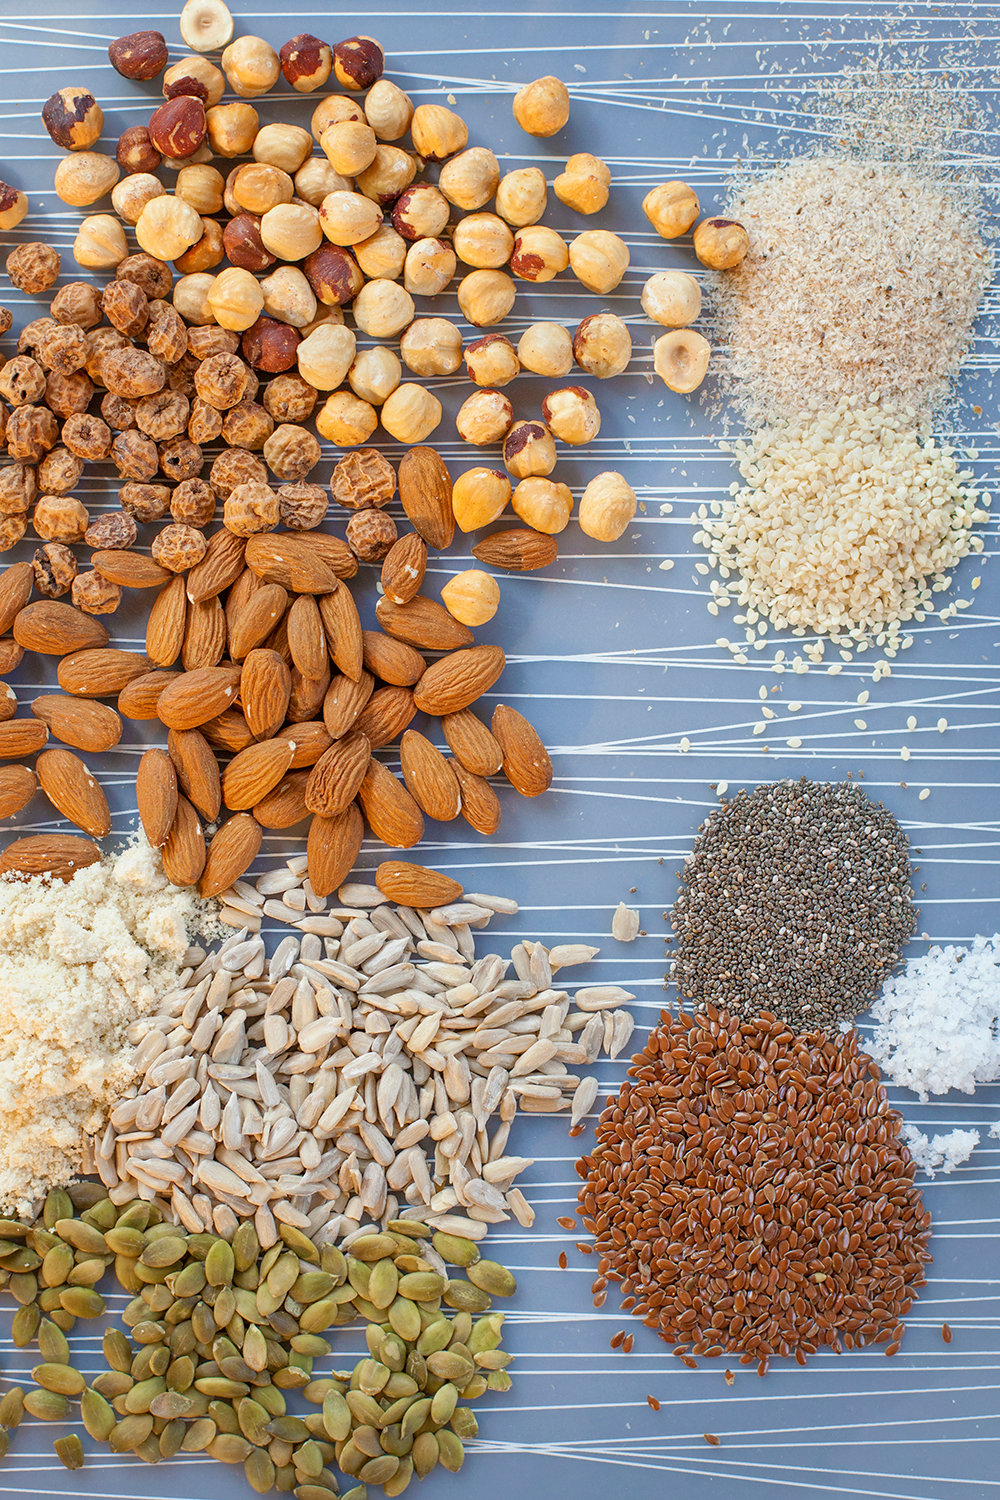 Clockwise, from top right: psyllium husk; sesame seeds, chia seeds, sea salt, flaxseeds, pumpkin seeds, sunflower seeds, ground almonds, whole almonds, tiger nuts, whole hazelnuts